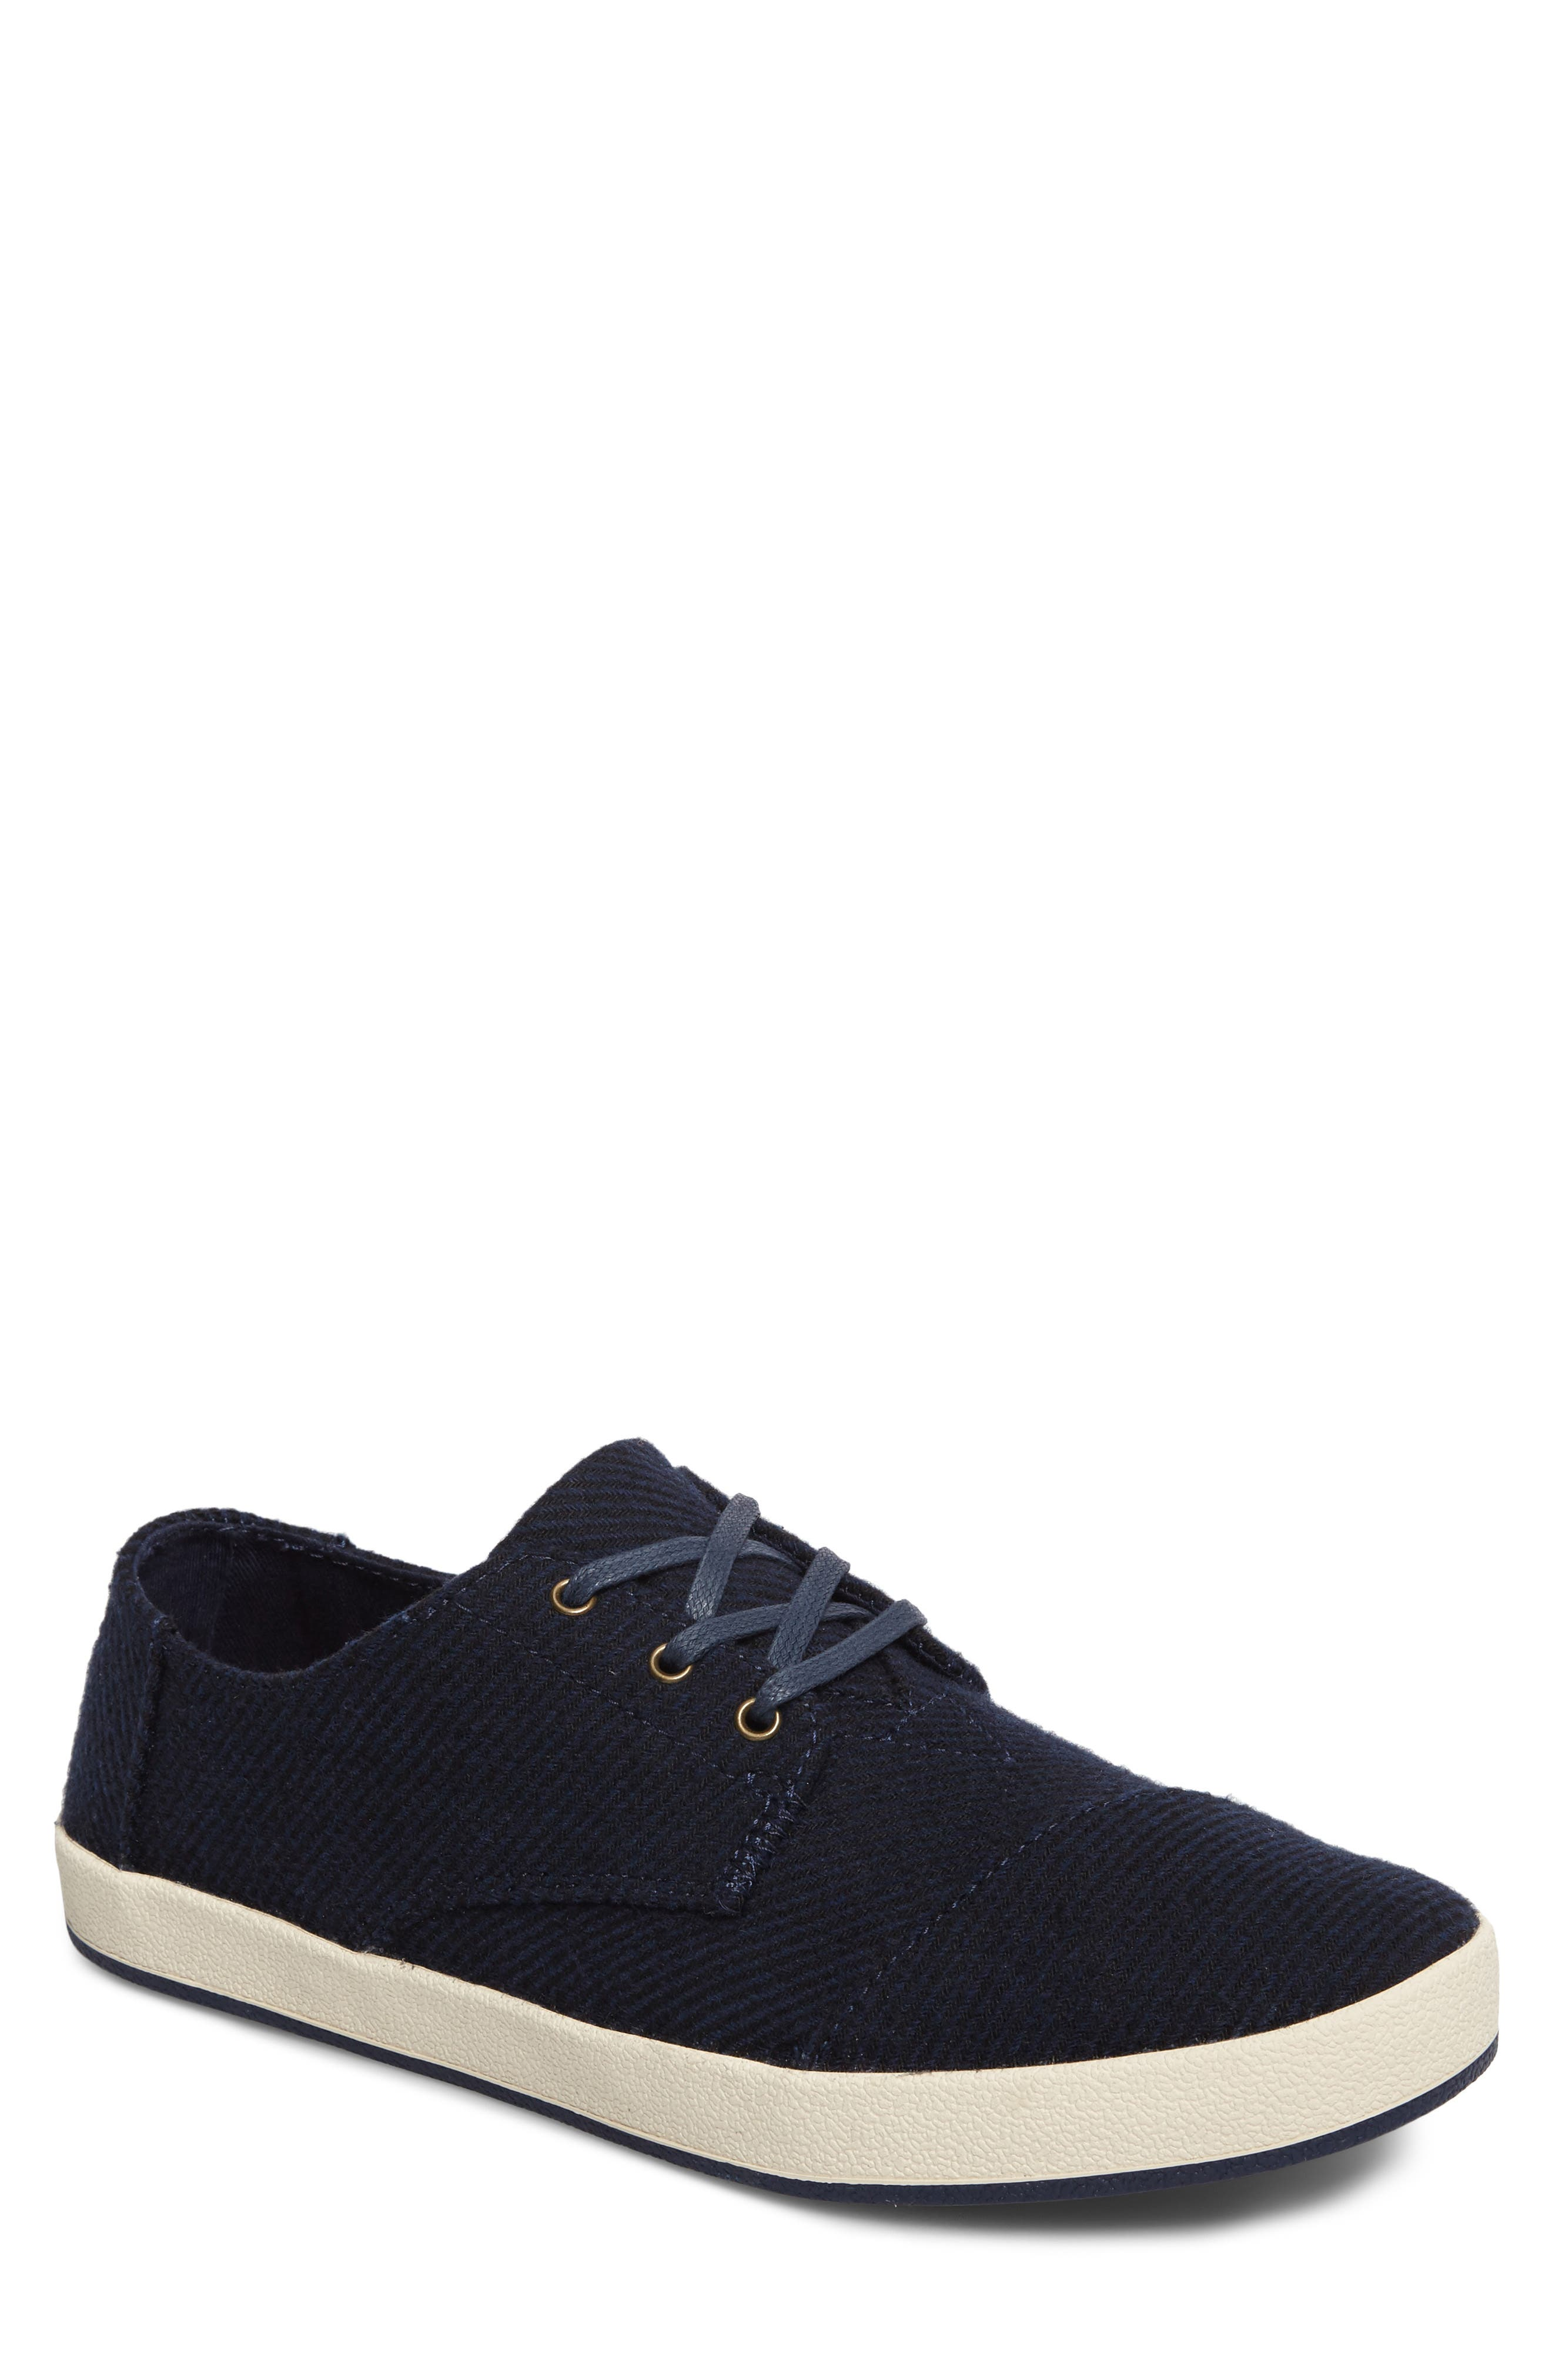 'Paseo' Sneaker,                         Main,                         color, Navy Blend